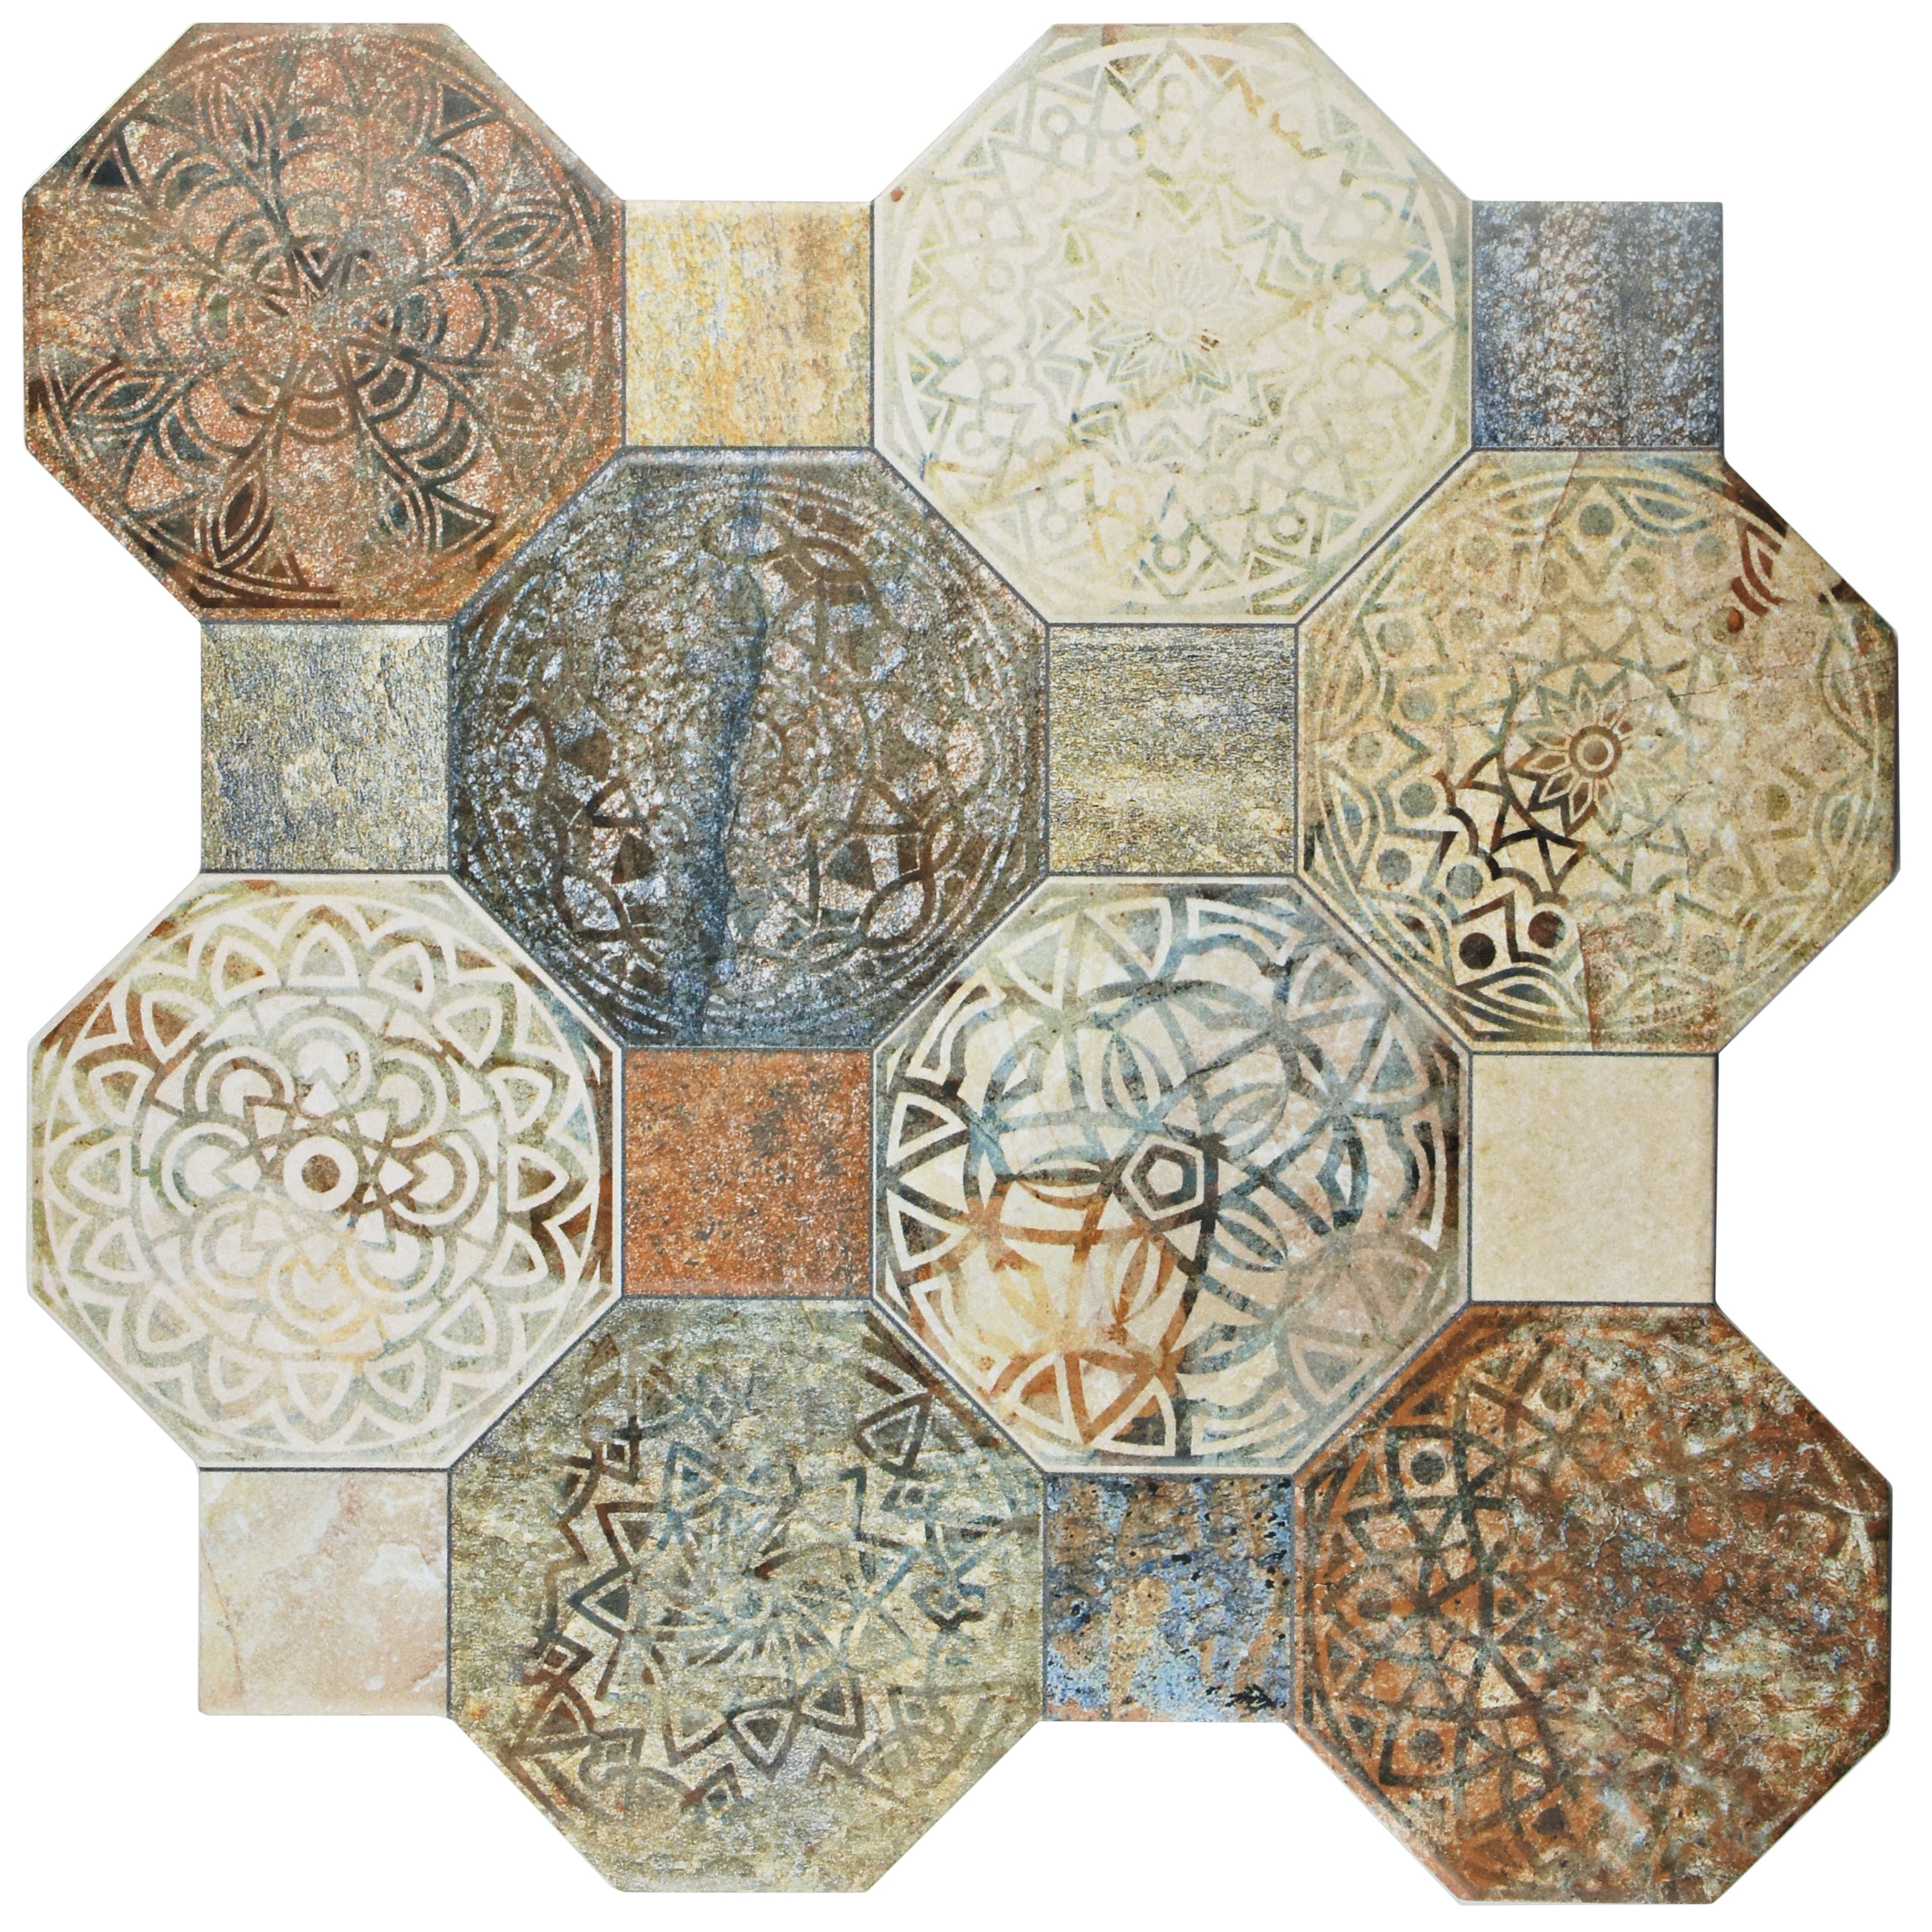 Shop Somertile 1775x1775 Inch Silix Decor Ceramic Floor And Wall